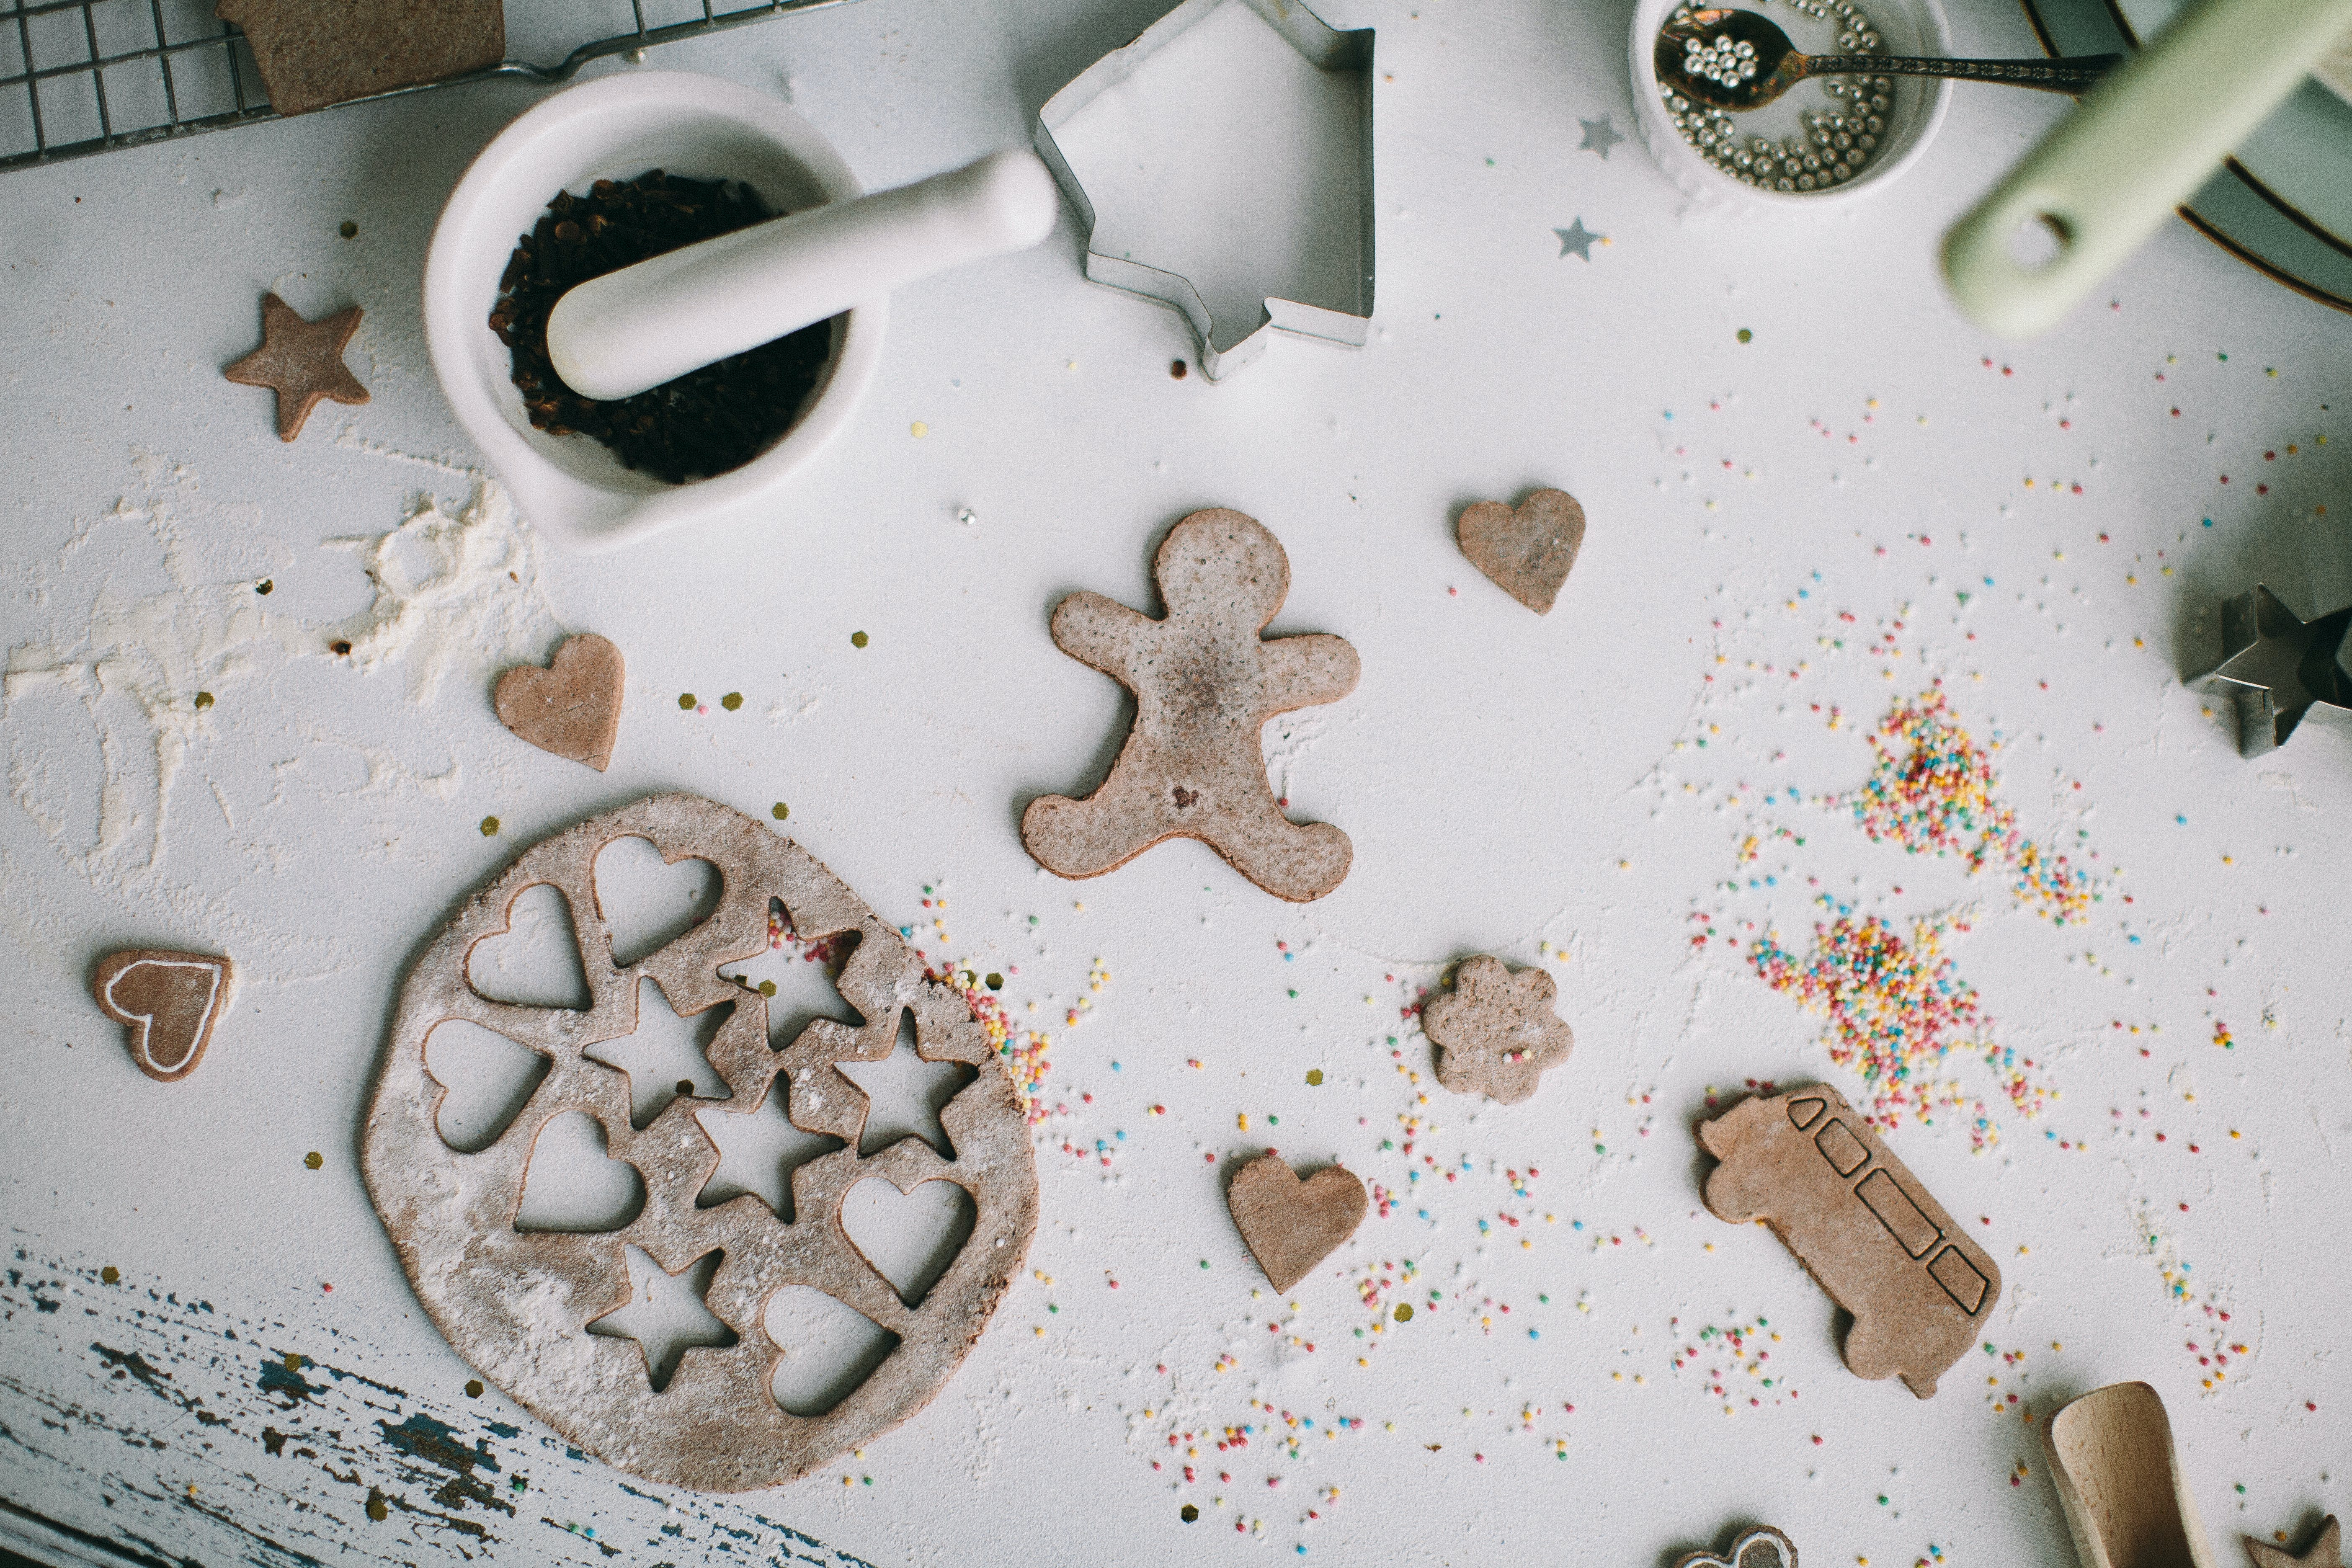 Gingerbread Cardboard Decor on White Surface